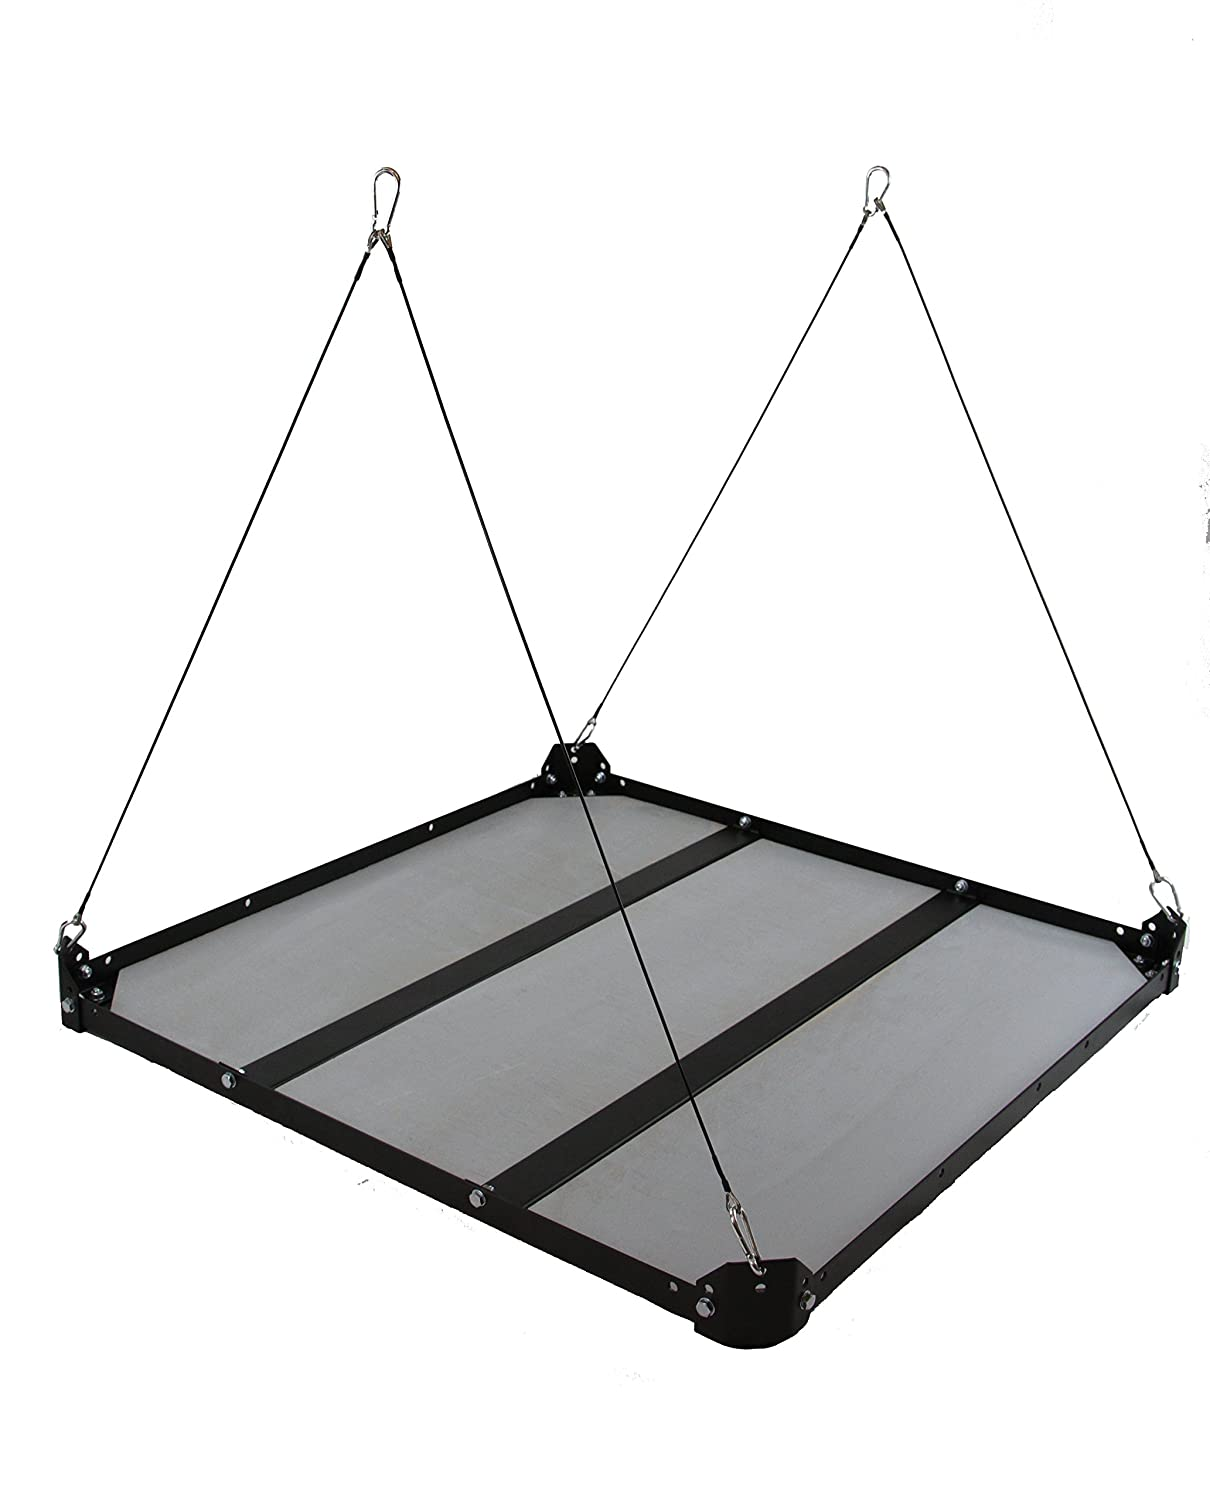 myLIFTER PF0002 Single Platform Kit, For Lifting Boxes, Totes, Garage Storage, Sporting Equipment and More myLIFTER Inc.